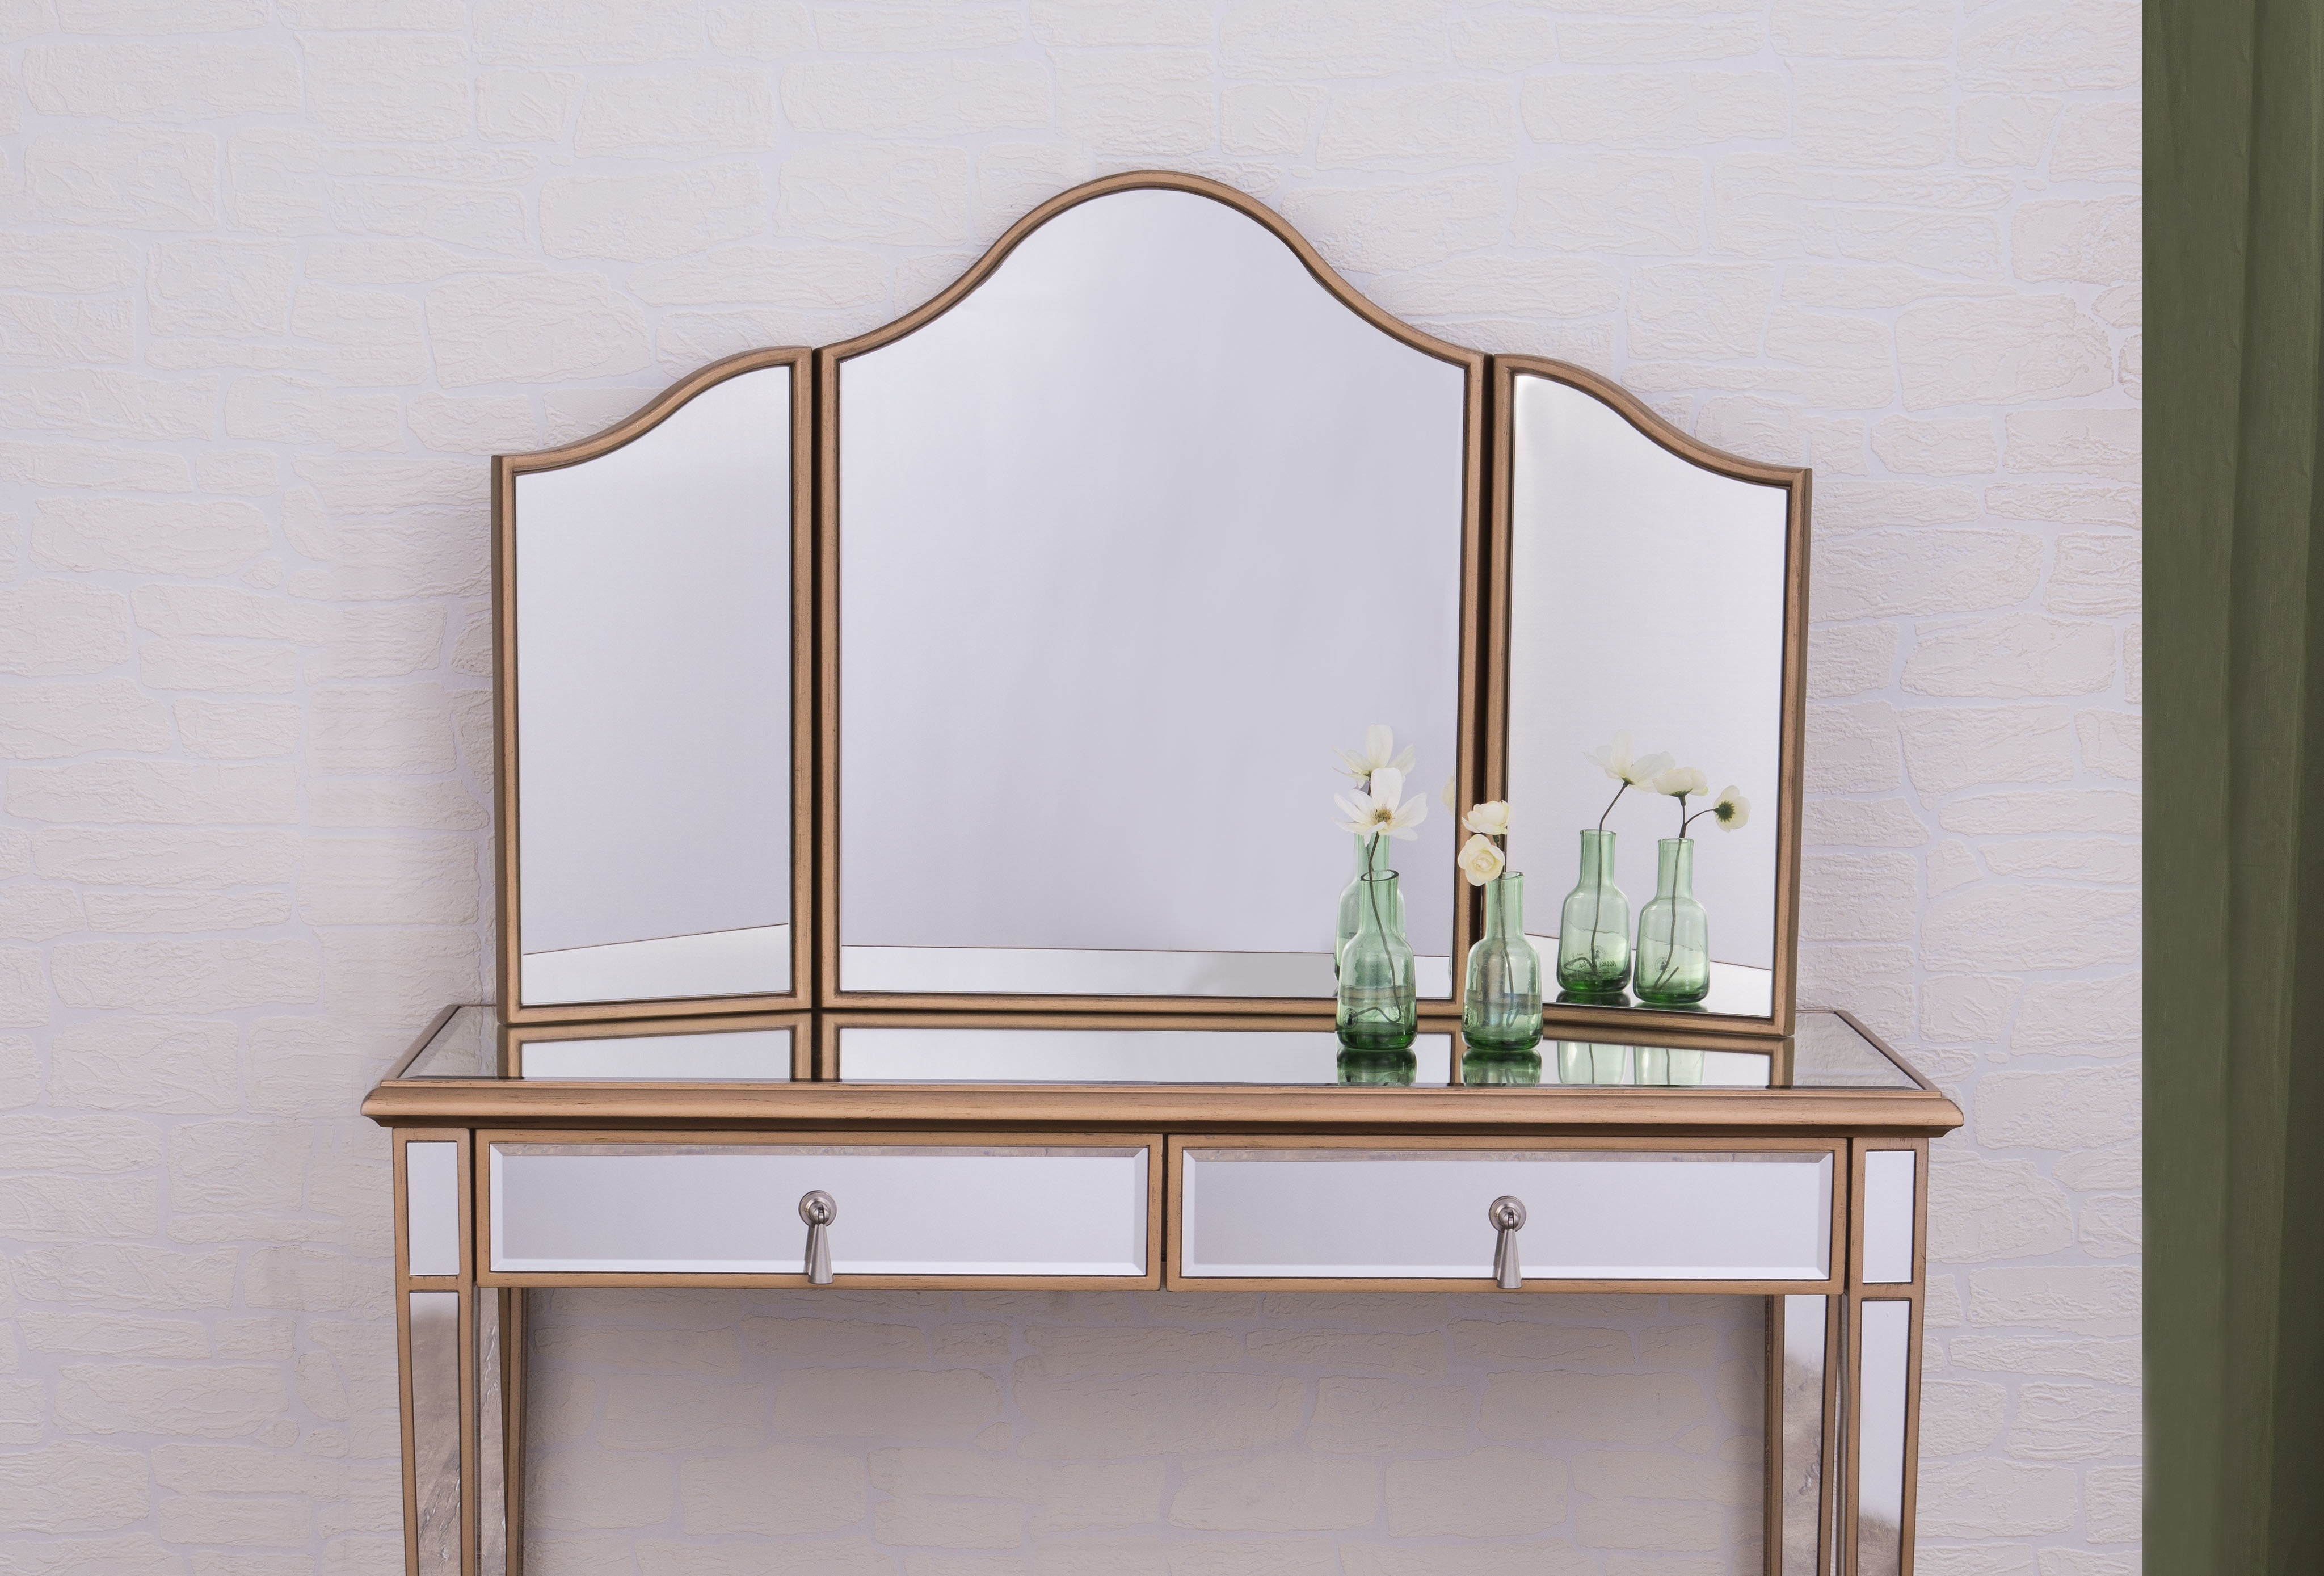 Tall Arched Scalloped Mirror | Wayfair pertaining to Dariel Tall Arched Scalloped Wall Mirrors (Image 25 of 30)